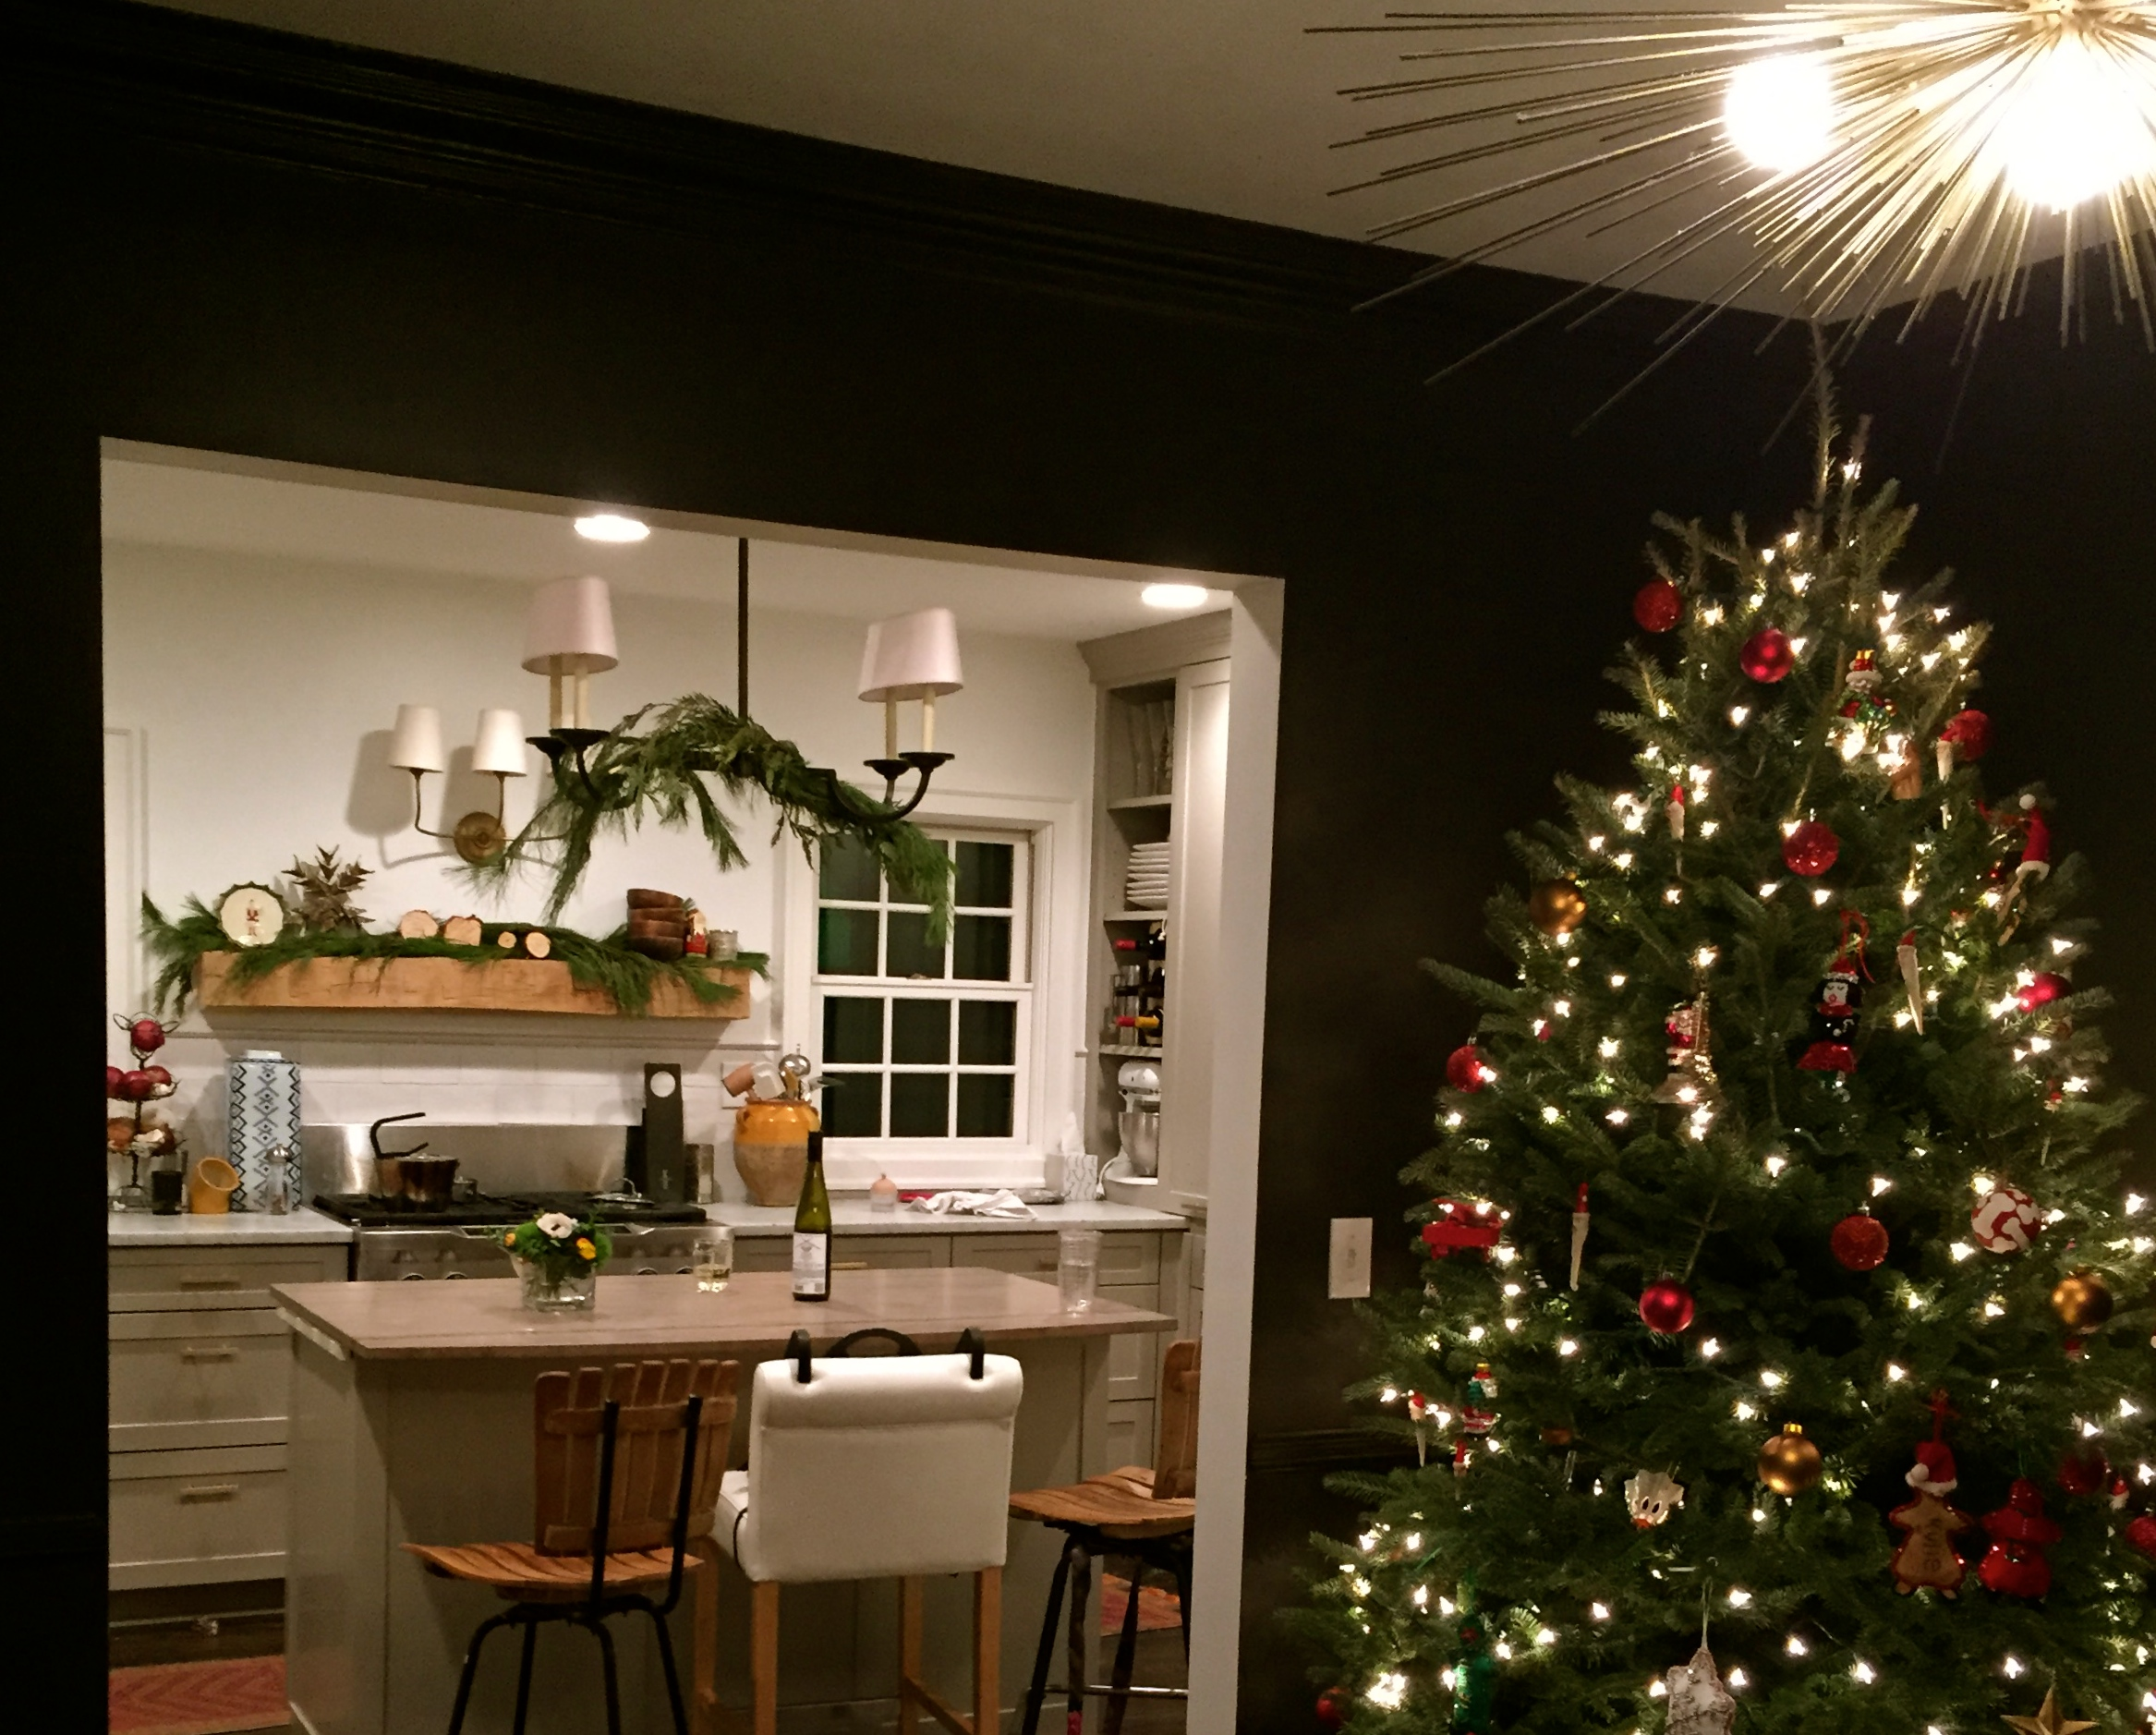 Christmas decor in the scovell wolfe remodeled kitchen